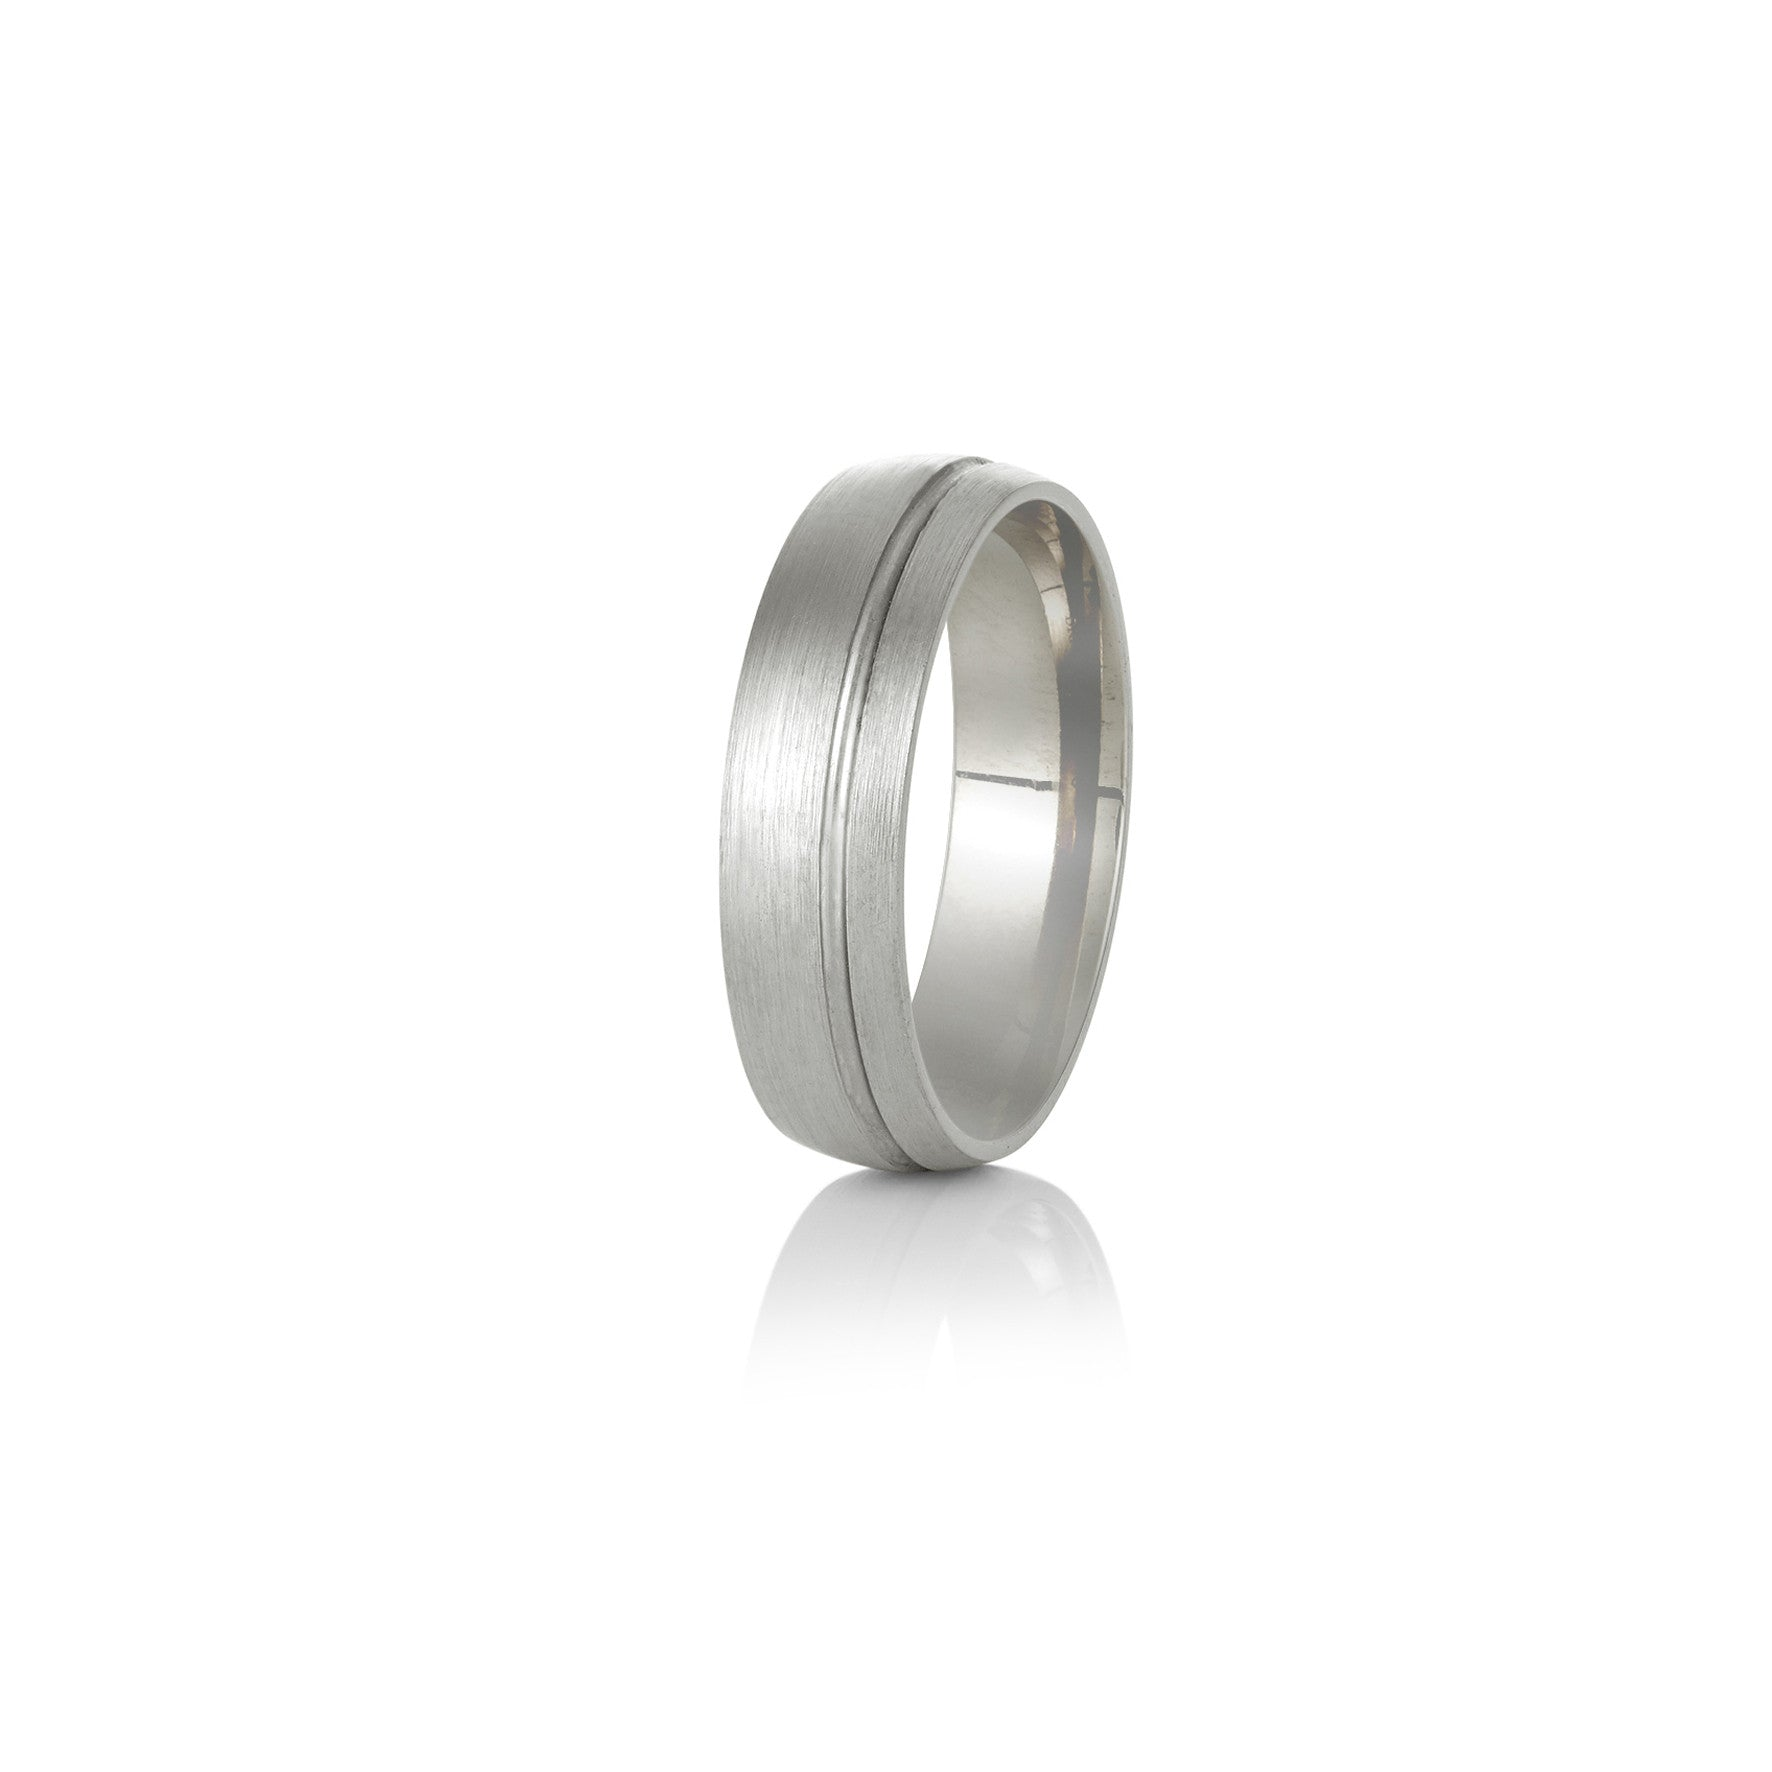 White Gold Wedding Band - Half Round off-set channel